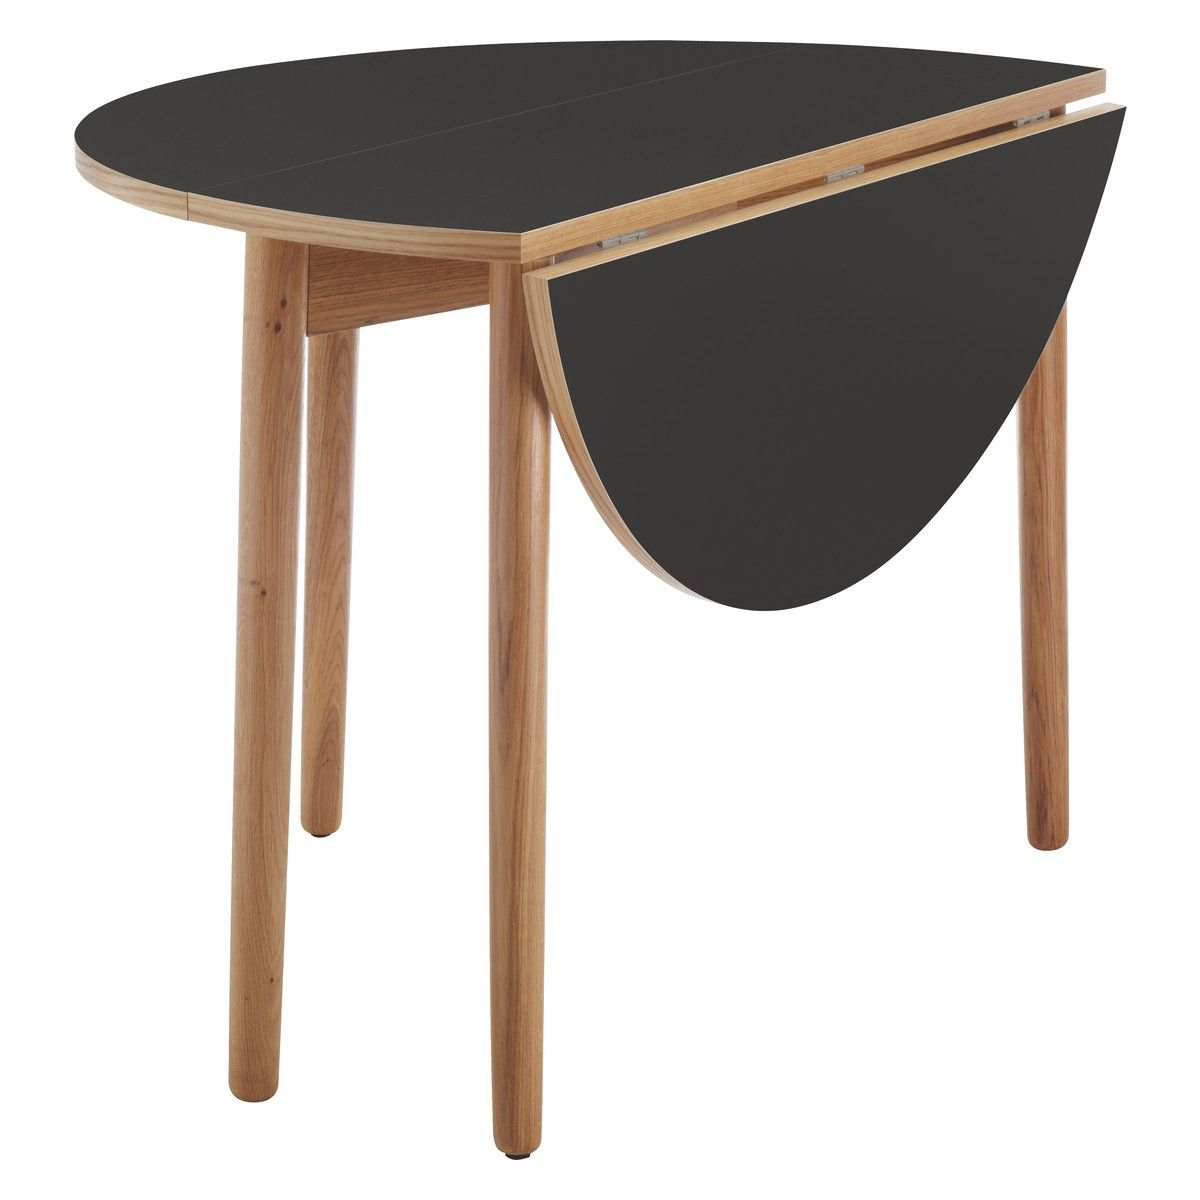 Elegant SUKI 2 4 Seat Black Folding Round Dining Table